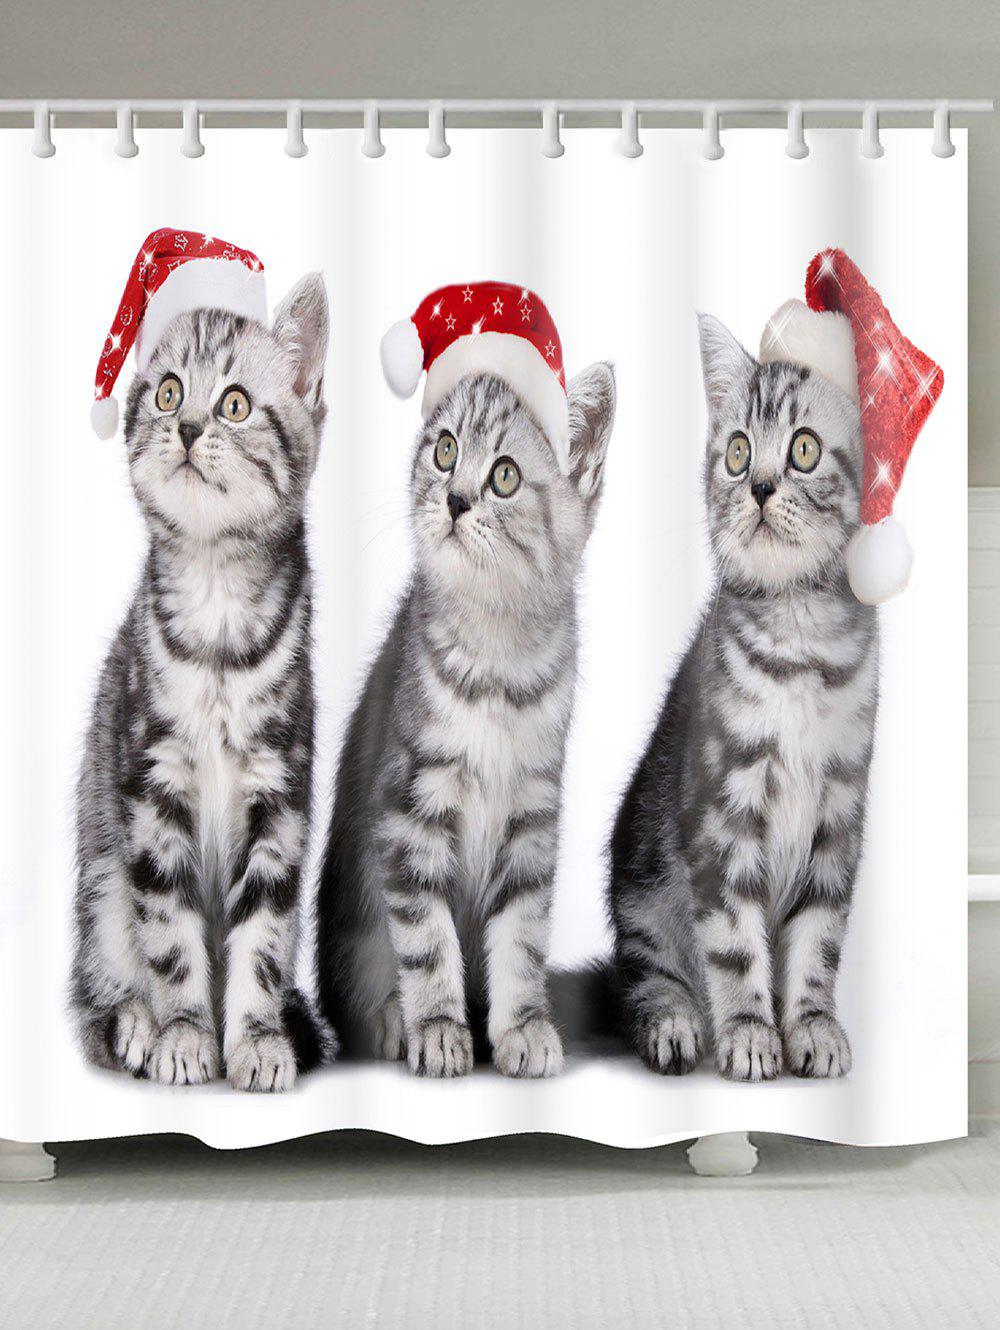 Three Christmas Cats Pattern Shower Bath CurtainHOME<br><br>Size: W71 INCH * L71 INCH; Color: RED + WHITE + GRAY; Products Type: Shower Curtains; Materials: Polyester; Pattern: Animal; Style: Festival; Number of Hook Holes: W59 inch * L71 inch:10, W71 inch * L71 inch:12, W71 inch * L79 inch:12; Package Contents: 1 x Shower Curtain 1 x Hooks (Set);